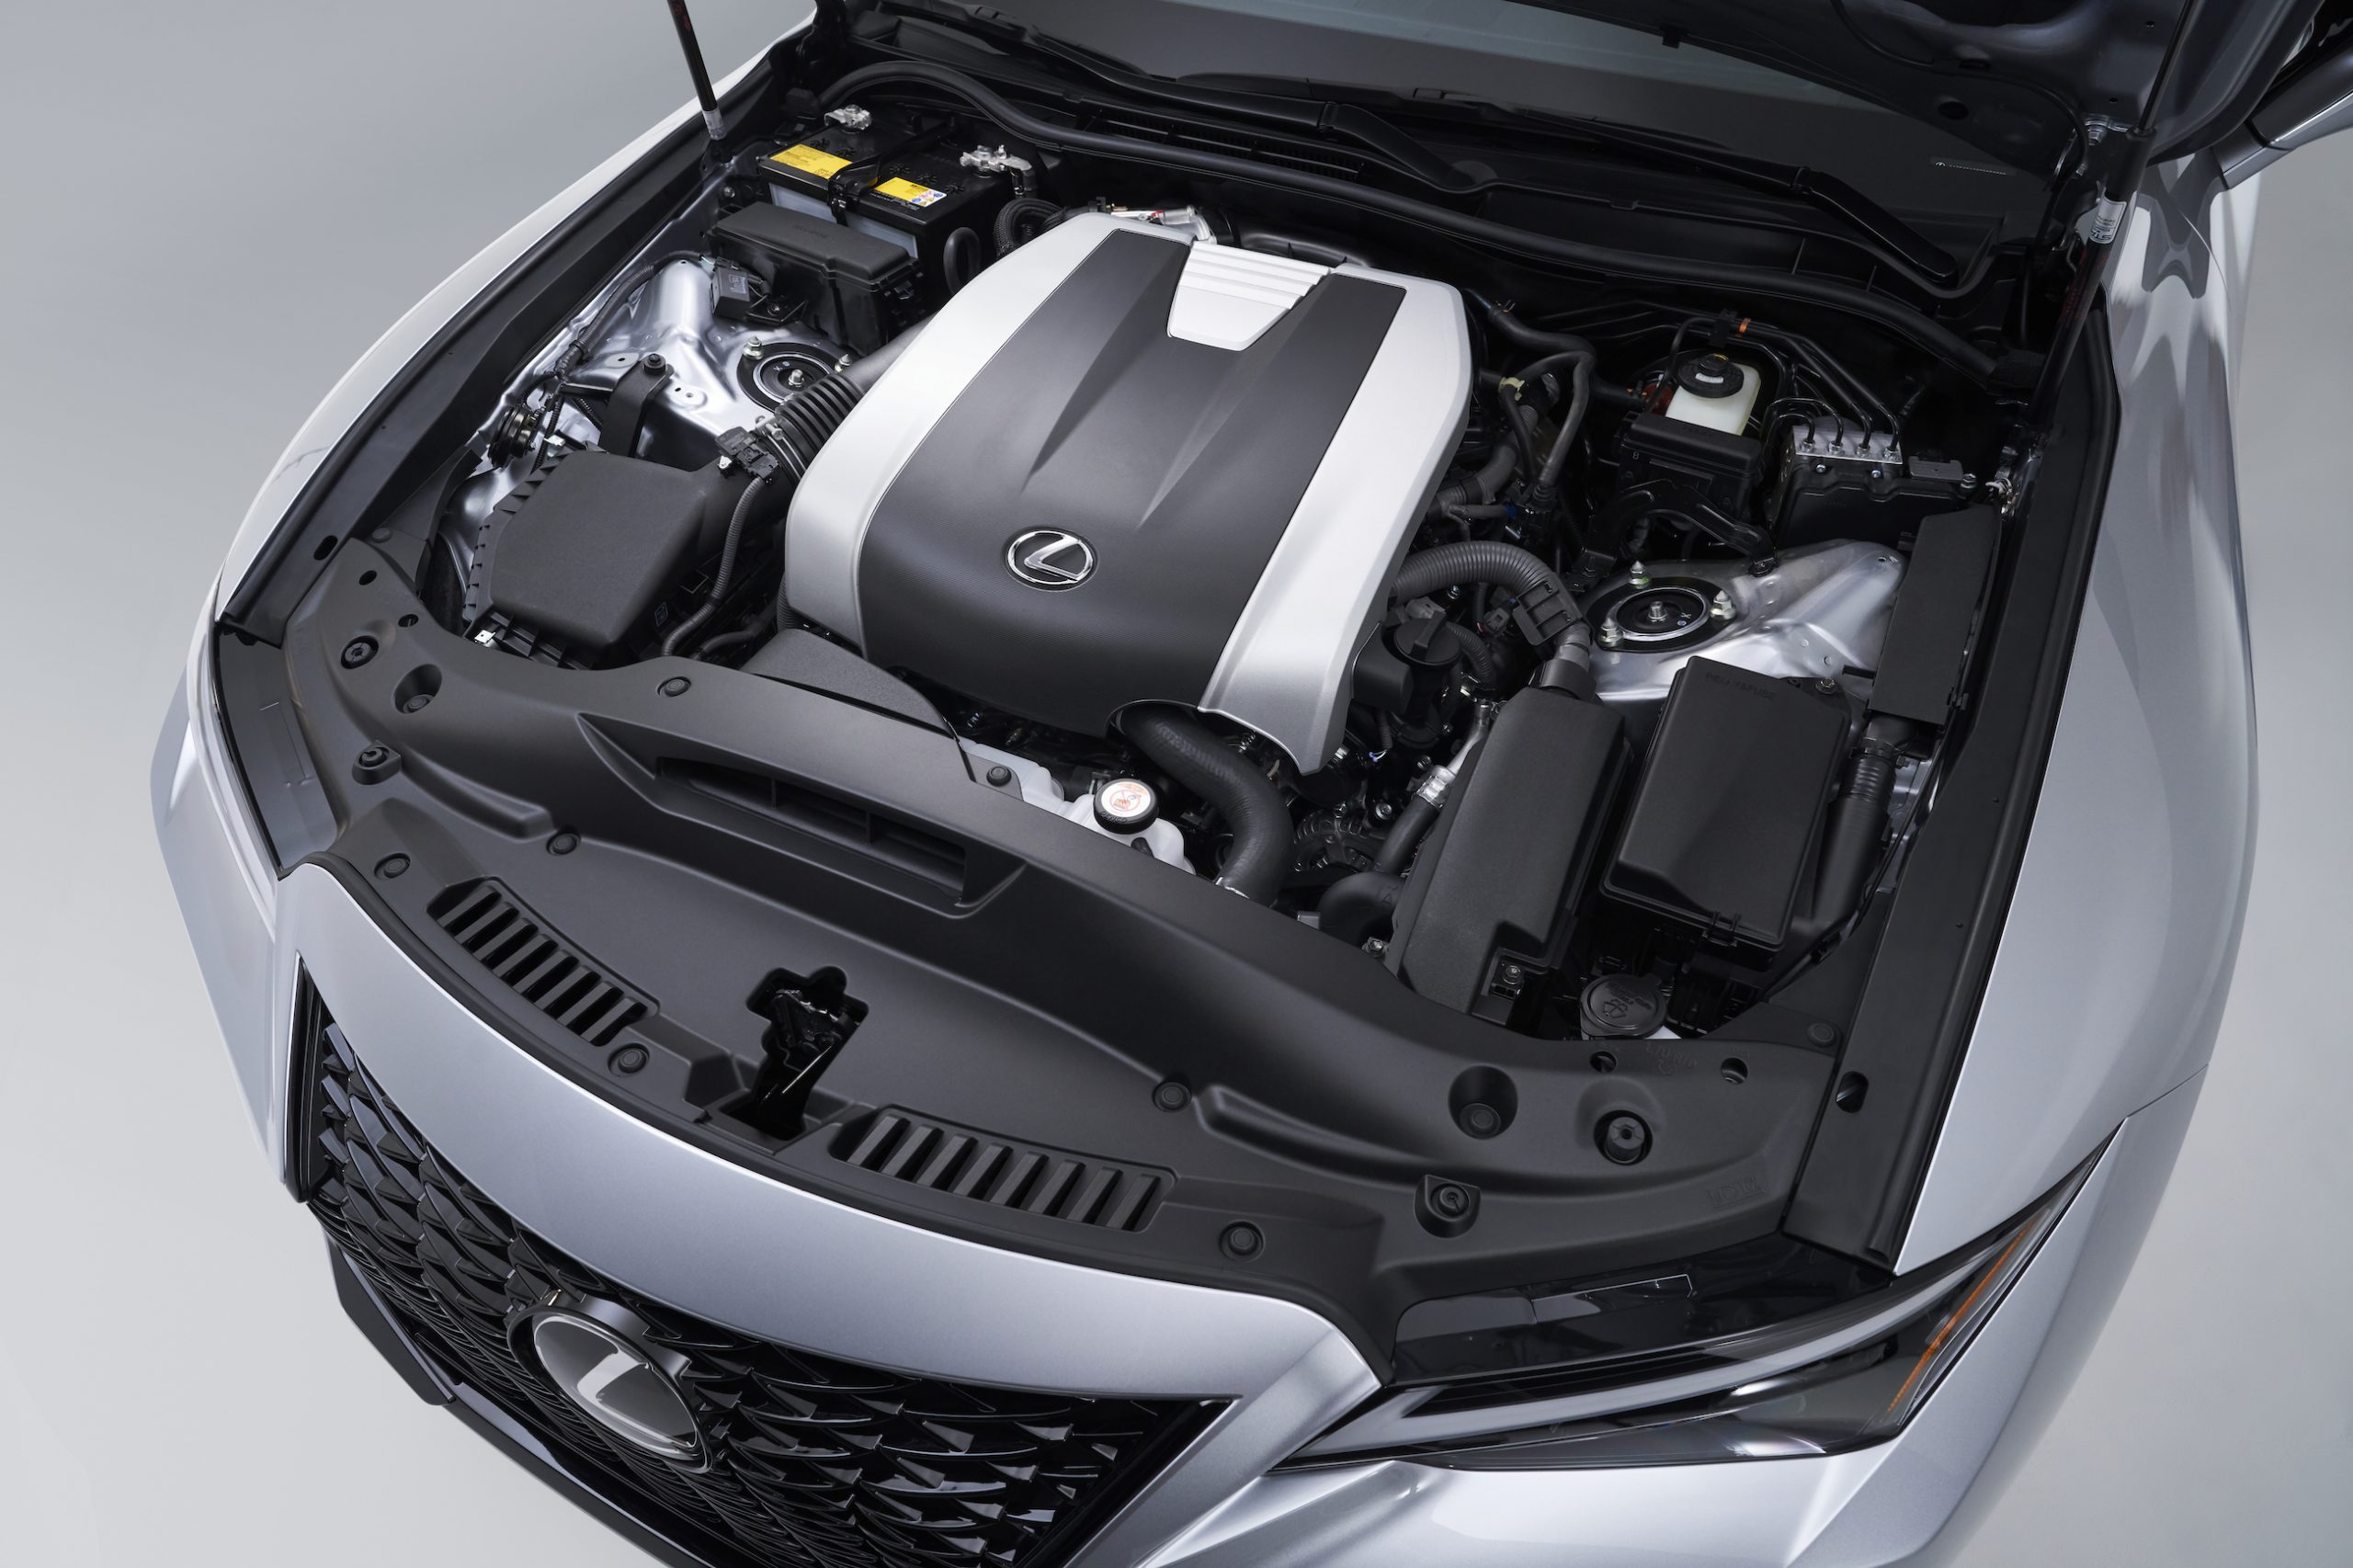 2021 Lexus IS 350 F Sport engine